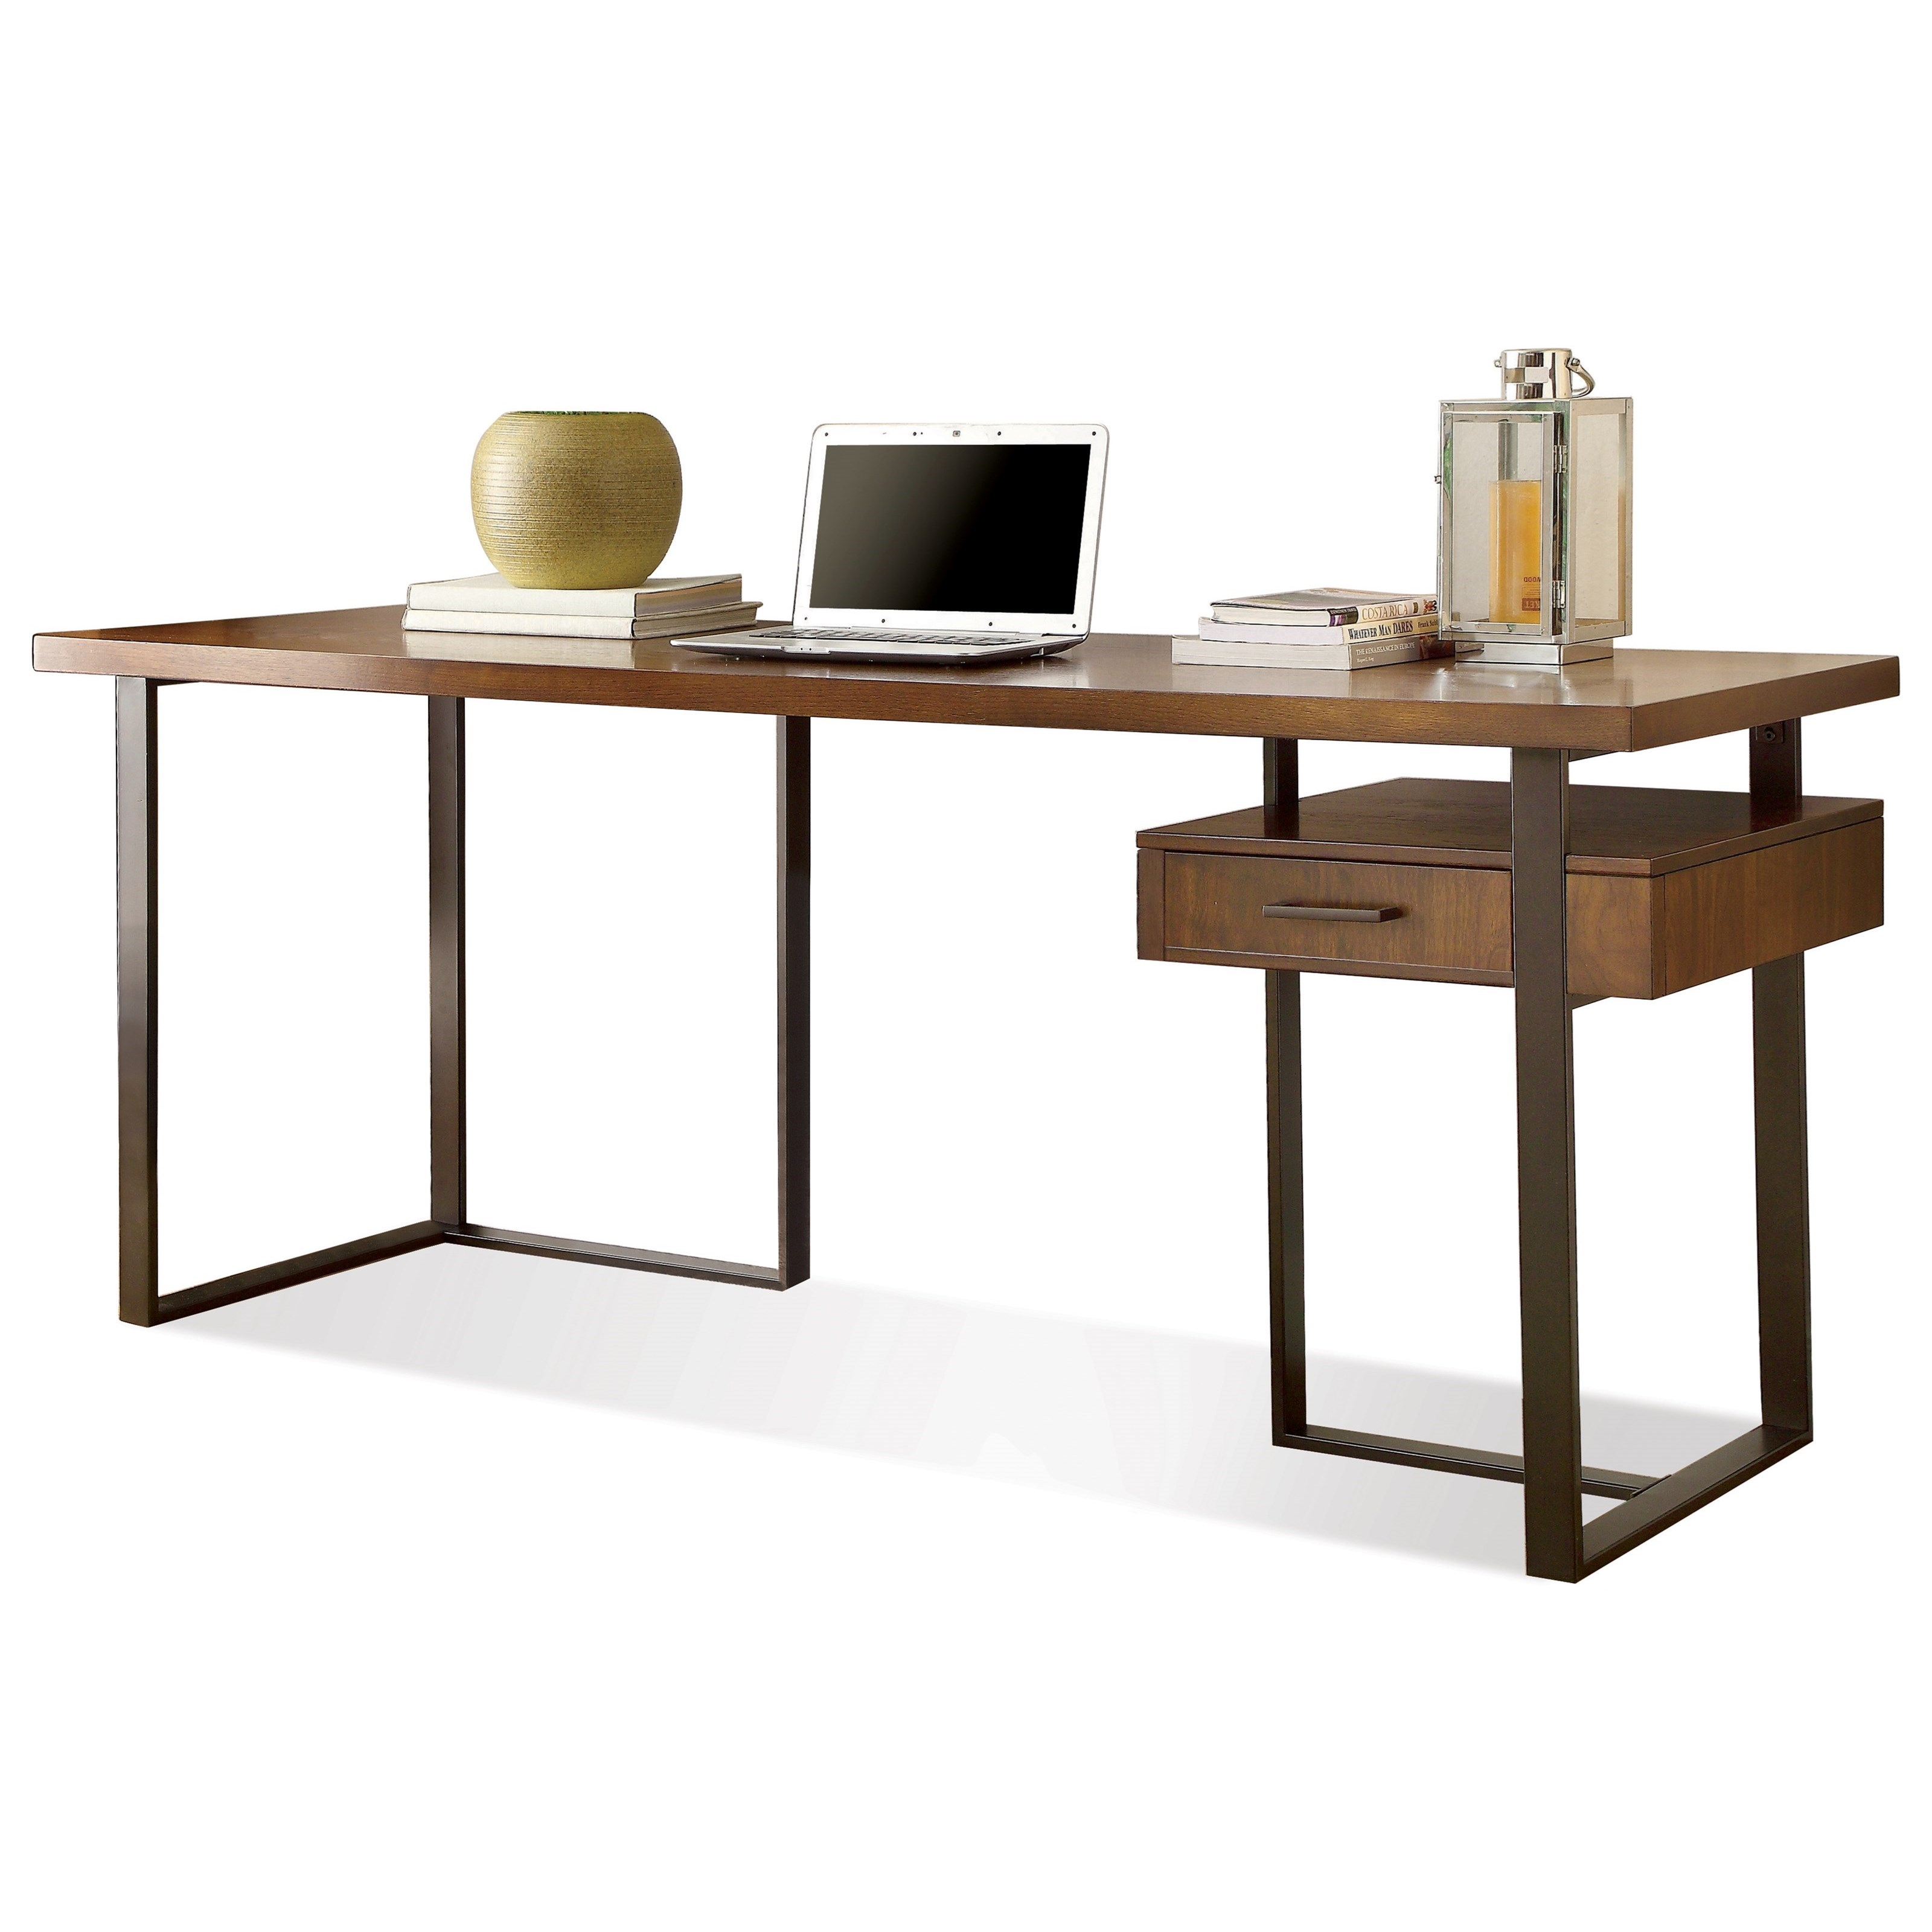 Riverside Furniture Terra Vista 1 Drawer Return Desk Ivan Smith Furniture Desk Return